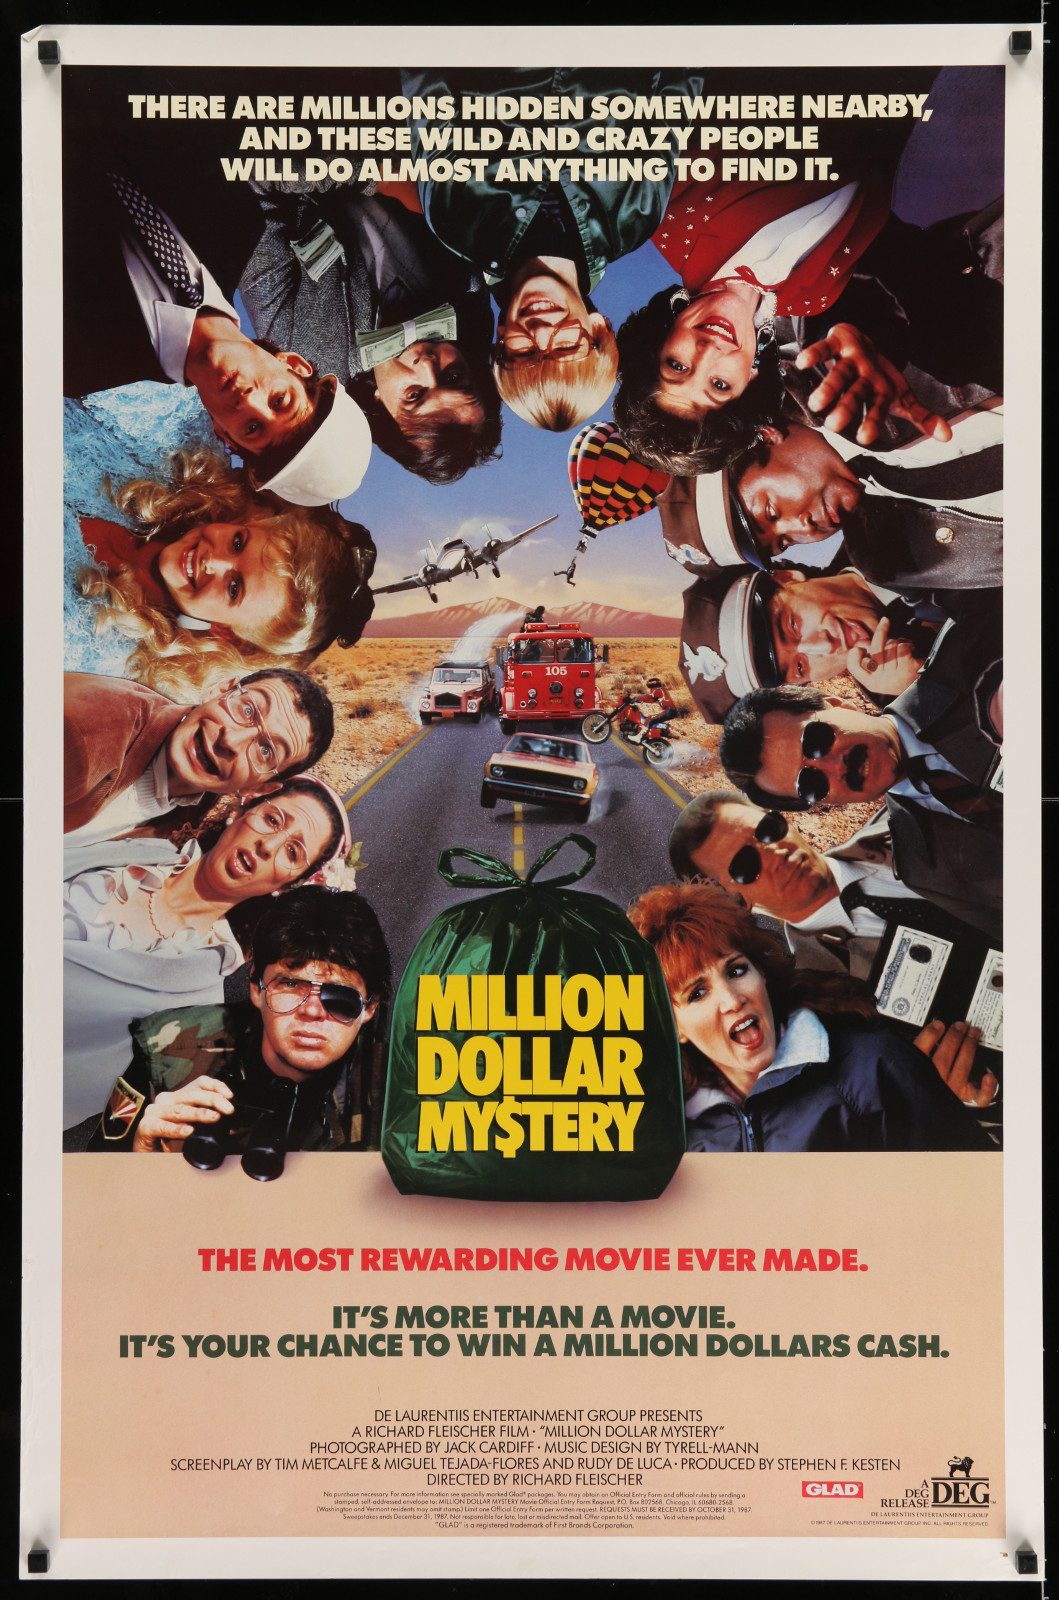 Million Dollar Mystery 2A422 A Part Of A Lot 19 Unfolded Mostly Double-Sided 27X41 One-Sheets '90S-00S Great Movie Images!